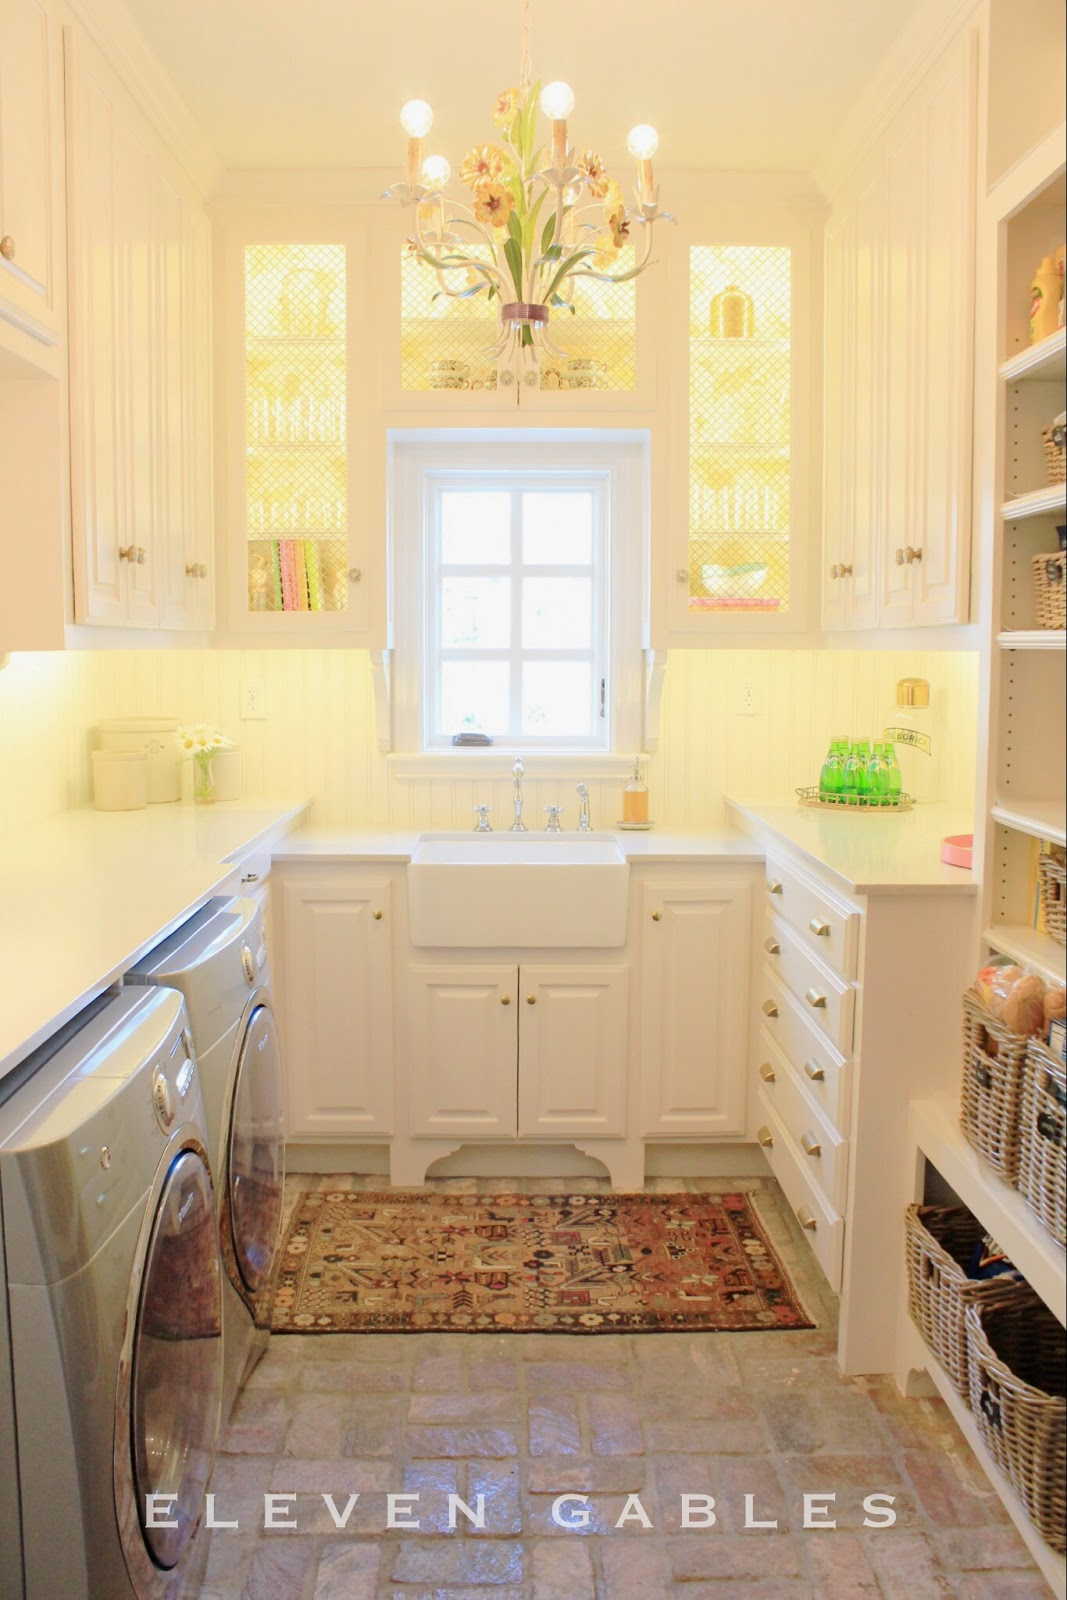 Eleven Gables: Eleven Gables Laundry | Butler's Pantry ...